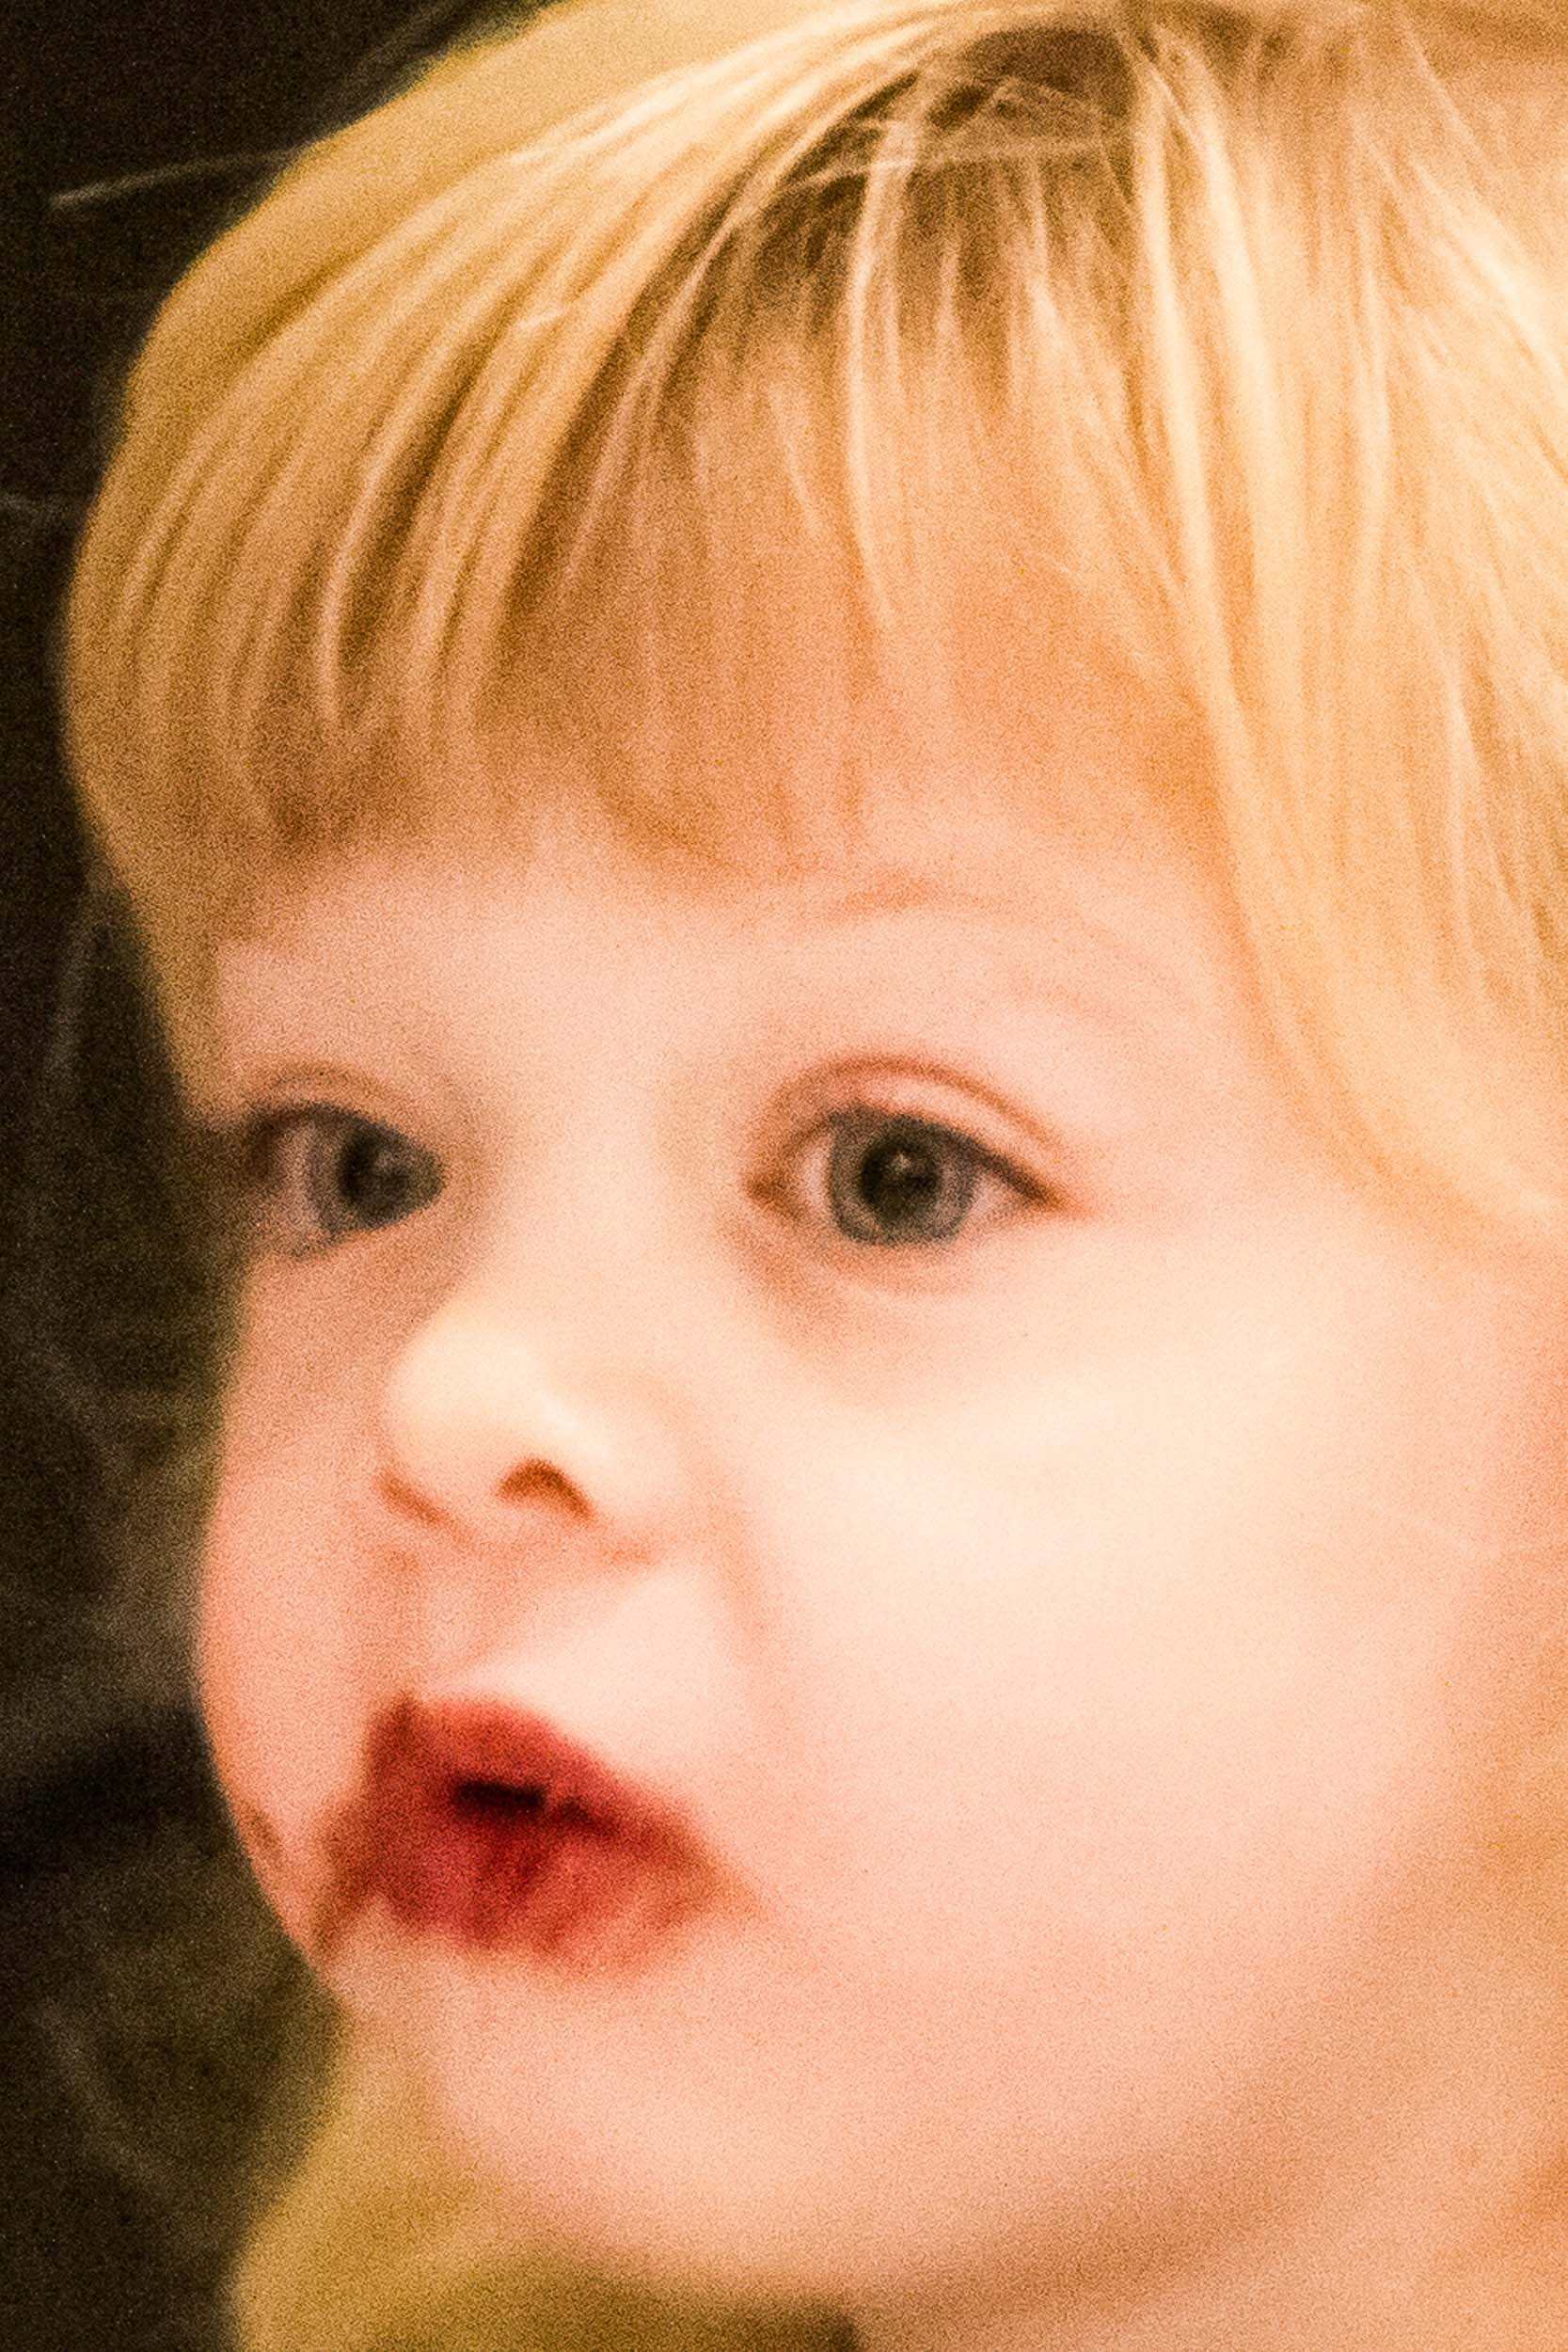 Barbara Alper- Photo of a young blond girl, with round cheeks, red lips and food around her mouth, closeup